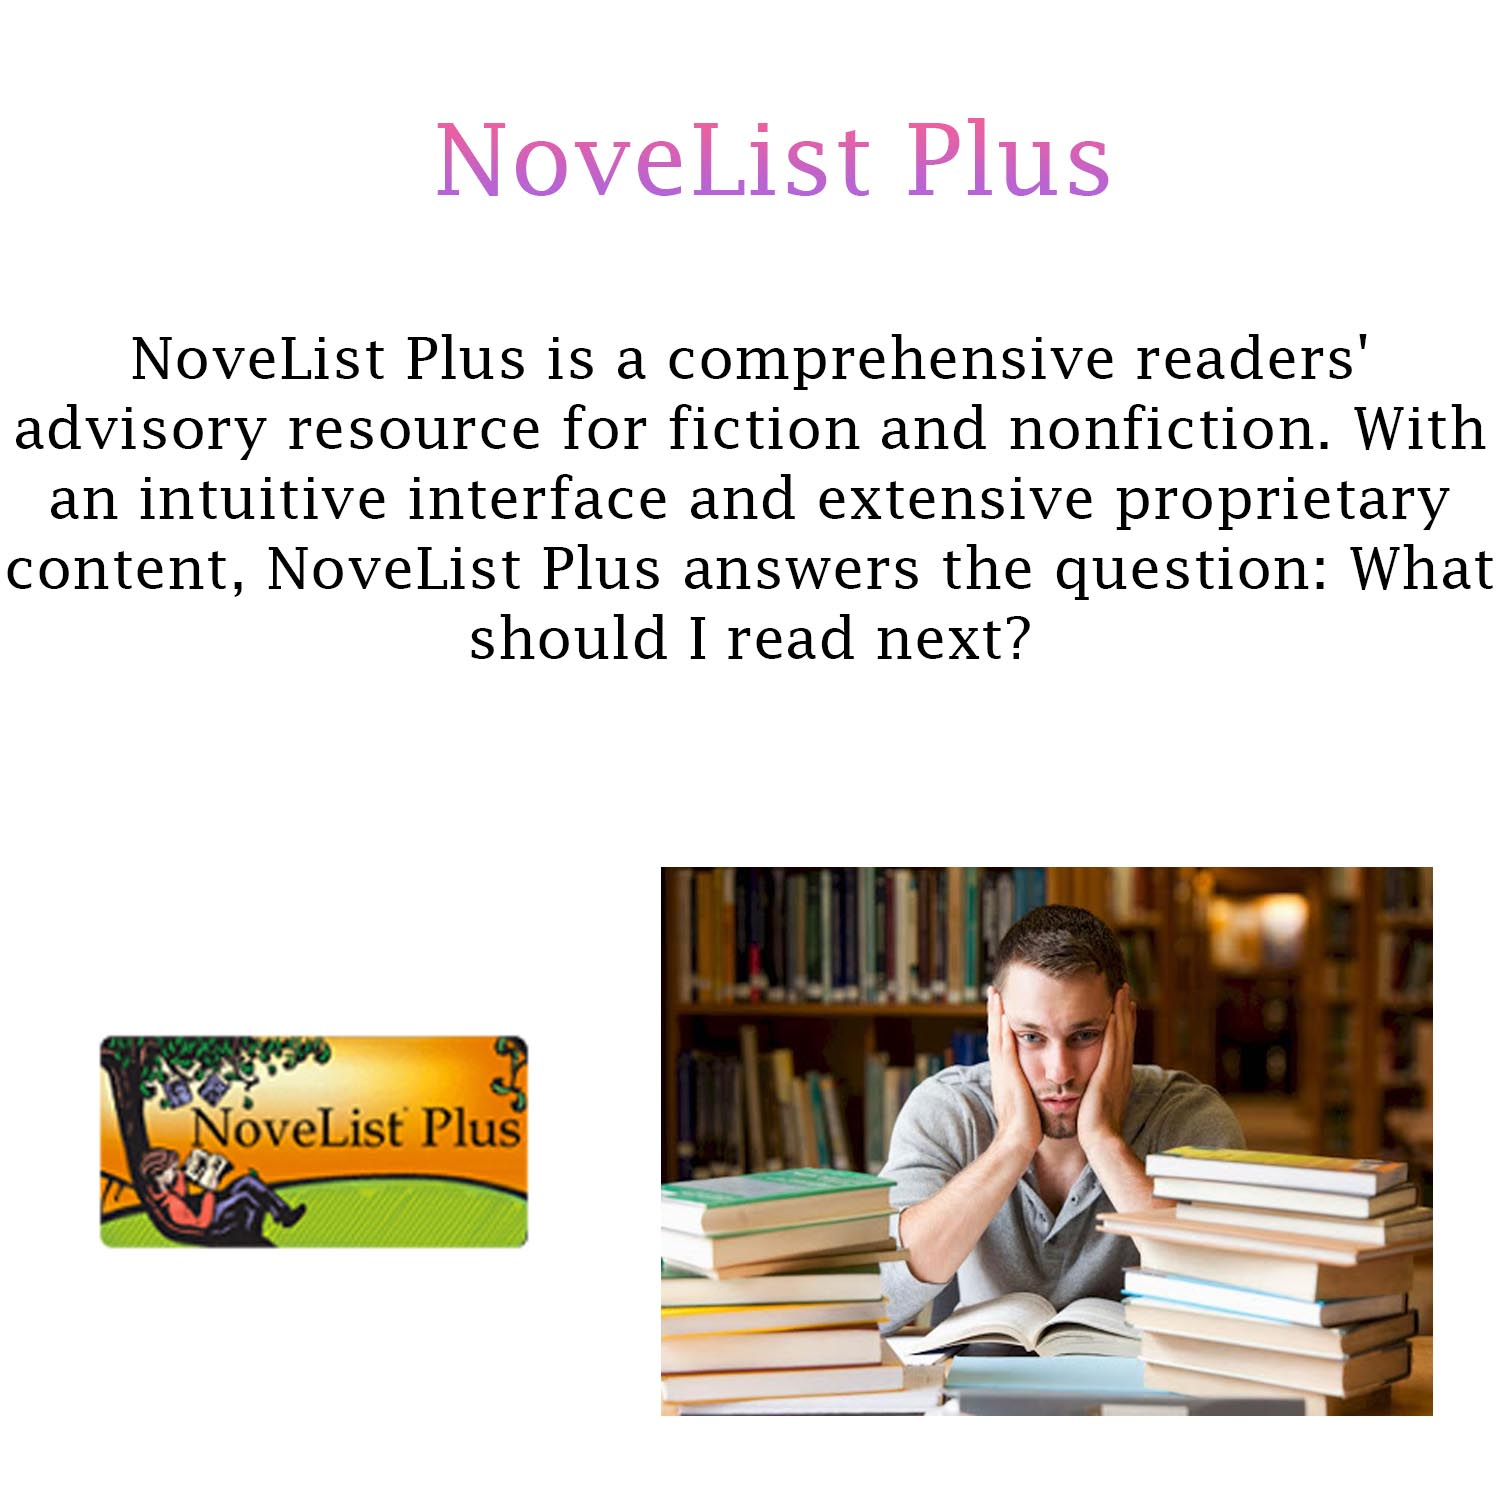 Small image with a synopsis of NoveList Plus, with a clickable link